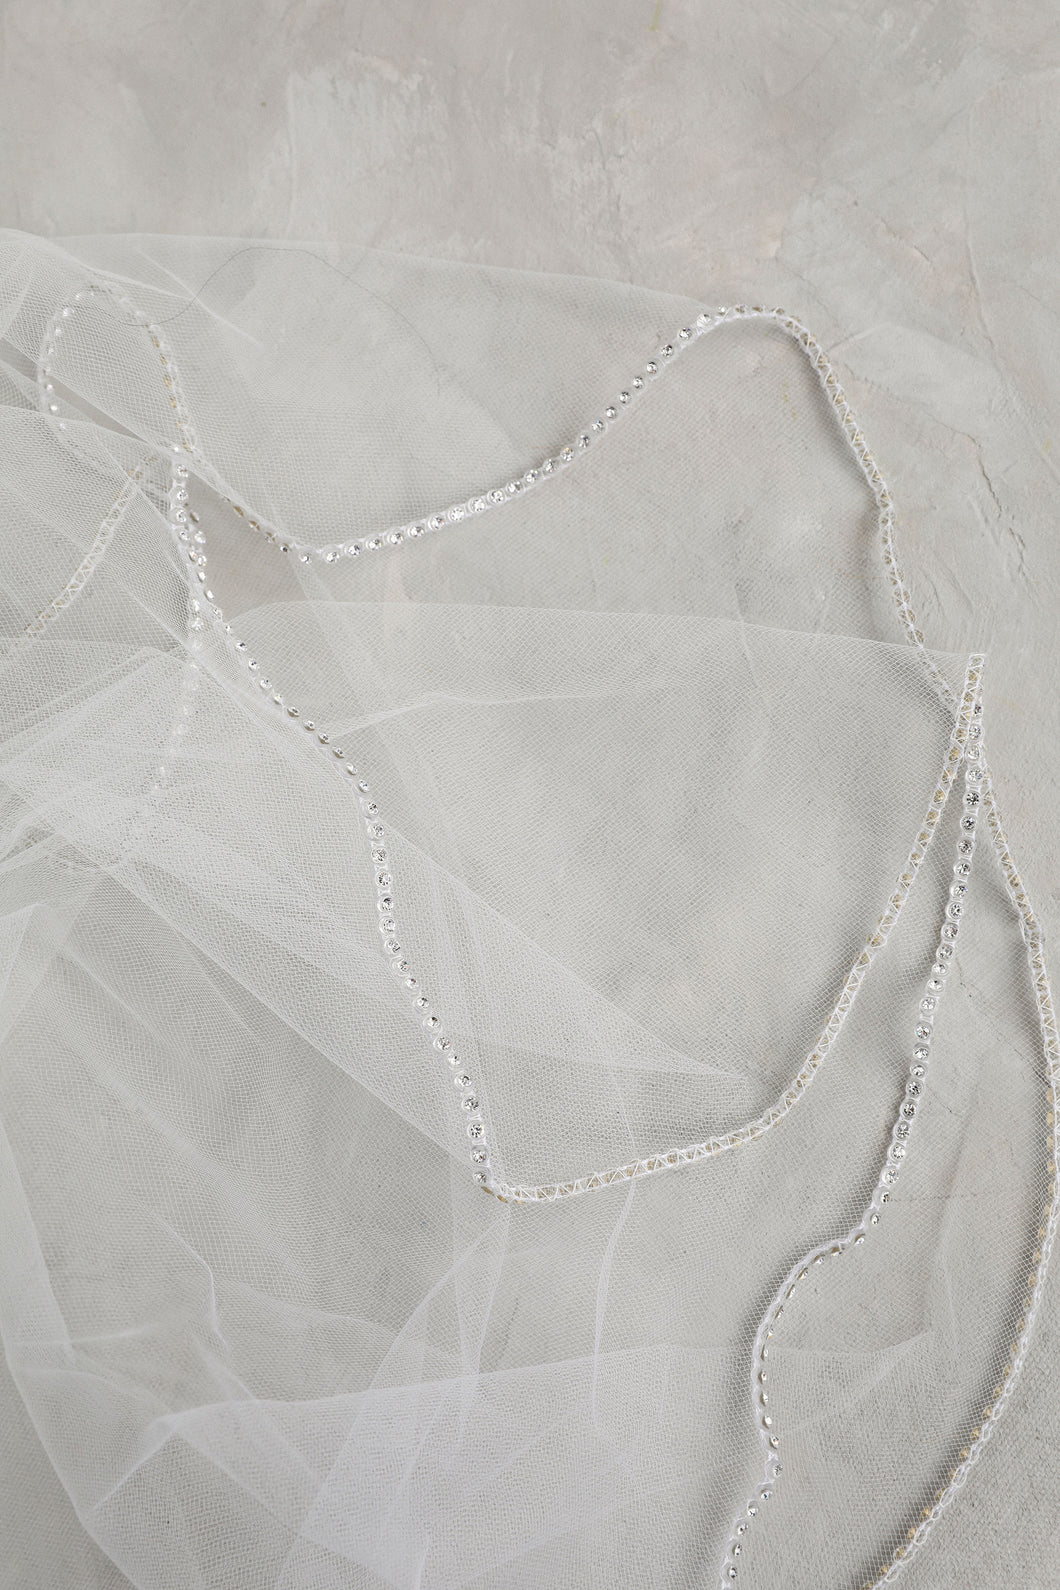 Cathedral One Tier Ivory Rhinestone Edge Veil